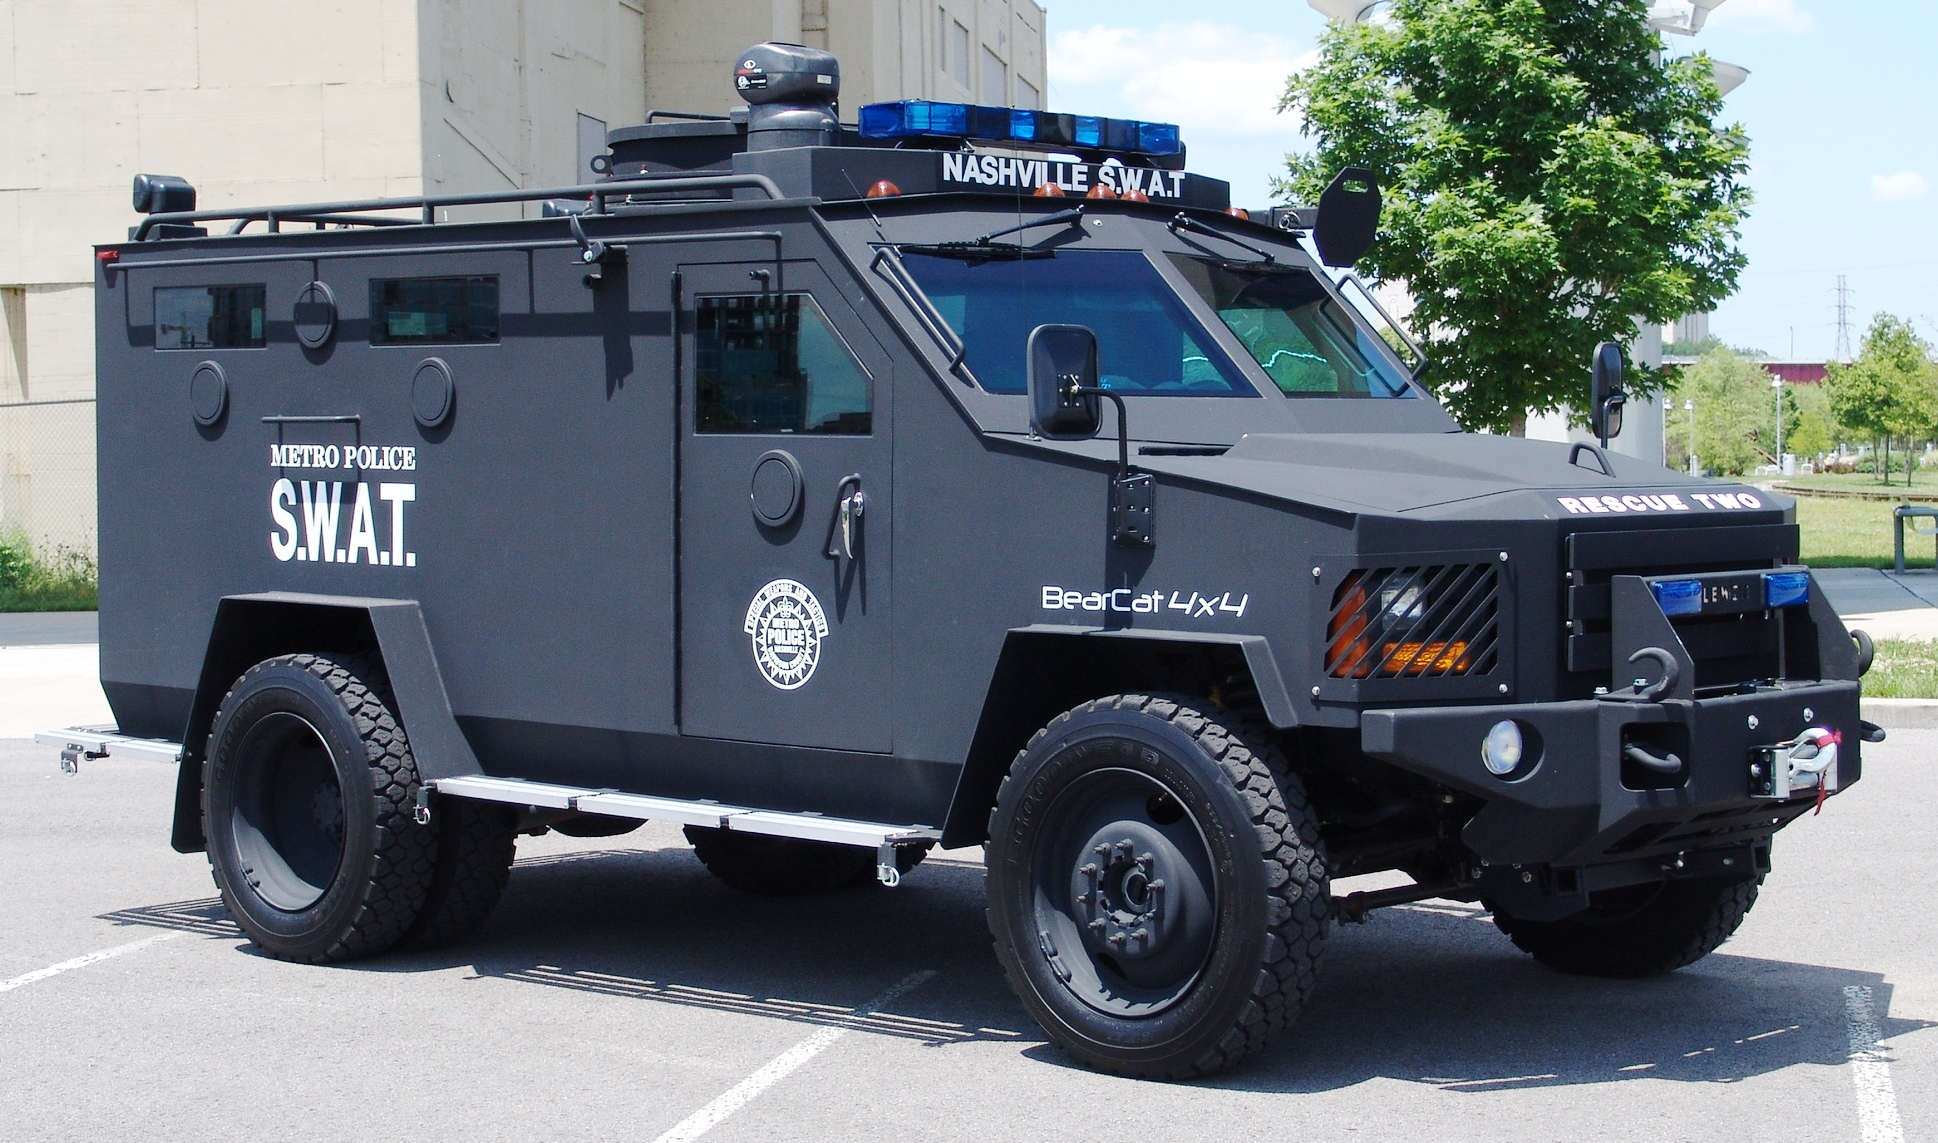 Towns Say No Tanks To Militarized Police Growing Unease